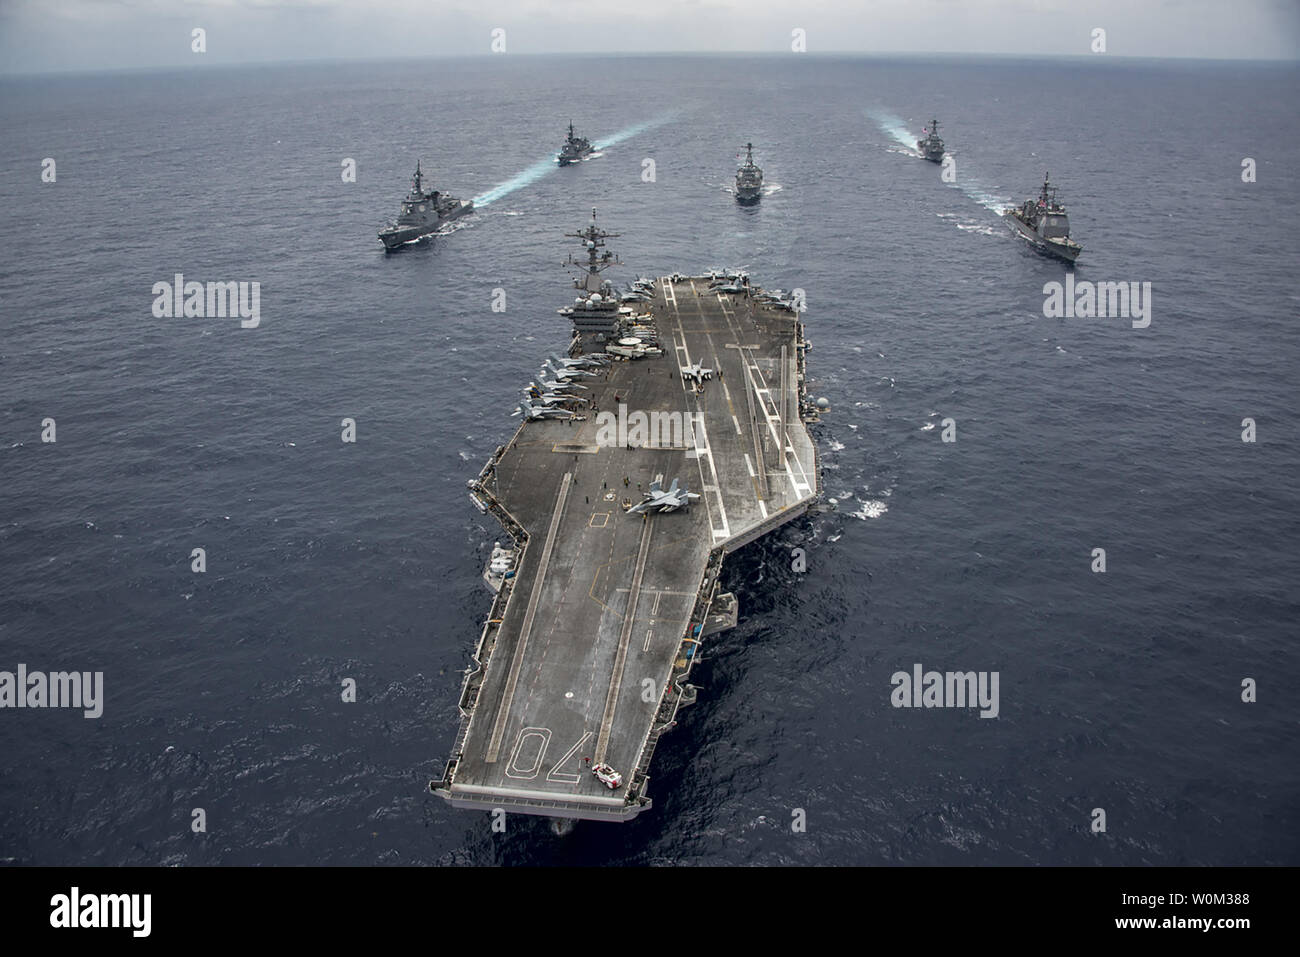 The Nimitz-class aircraft carrier USS Carl Vinson (CVN 70) leads the Japan Maritime Self-Defense Force destroyers JS Ashigara (DDG 178), left front, and JS Samidare (DD 106), left rear, the Arleigh Burke-class guided-missile destroyers USS Michael Murphy (DDG 112), center rear, and USS Wayne E. Meyer (DDG 108), right rear, and the Ticonderoga-class guided-missile cruiser USS Lake Champlain (CG 57), right front, during a transit the Philippine Sea on April 28, 2017. The U.S. Navy has patrolled the Indo-Asia-Pacific routinely for more than 70 years promoting regional peace and security. Photo by Stock Photo